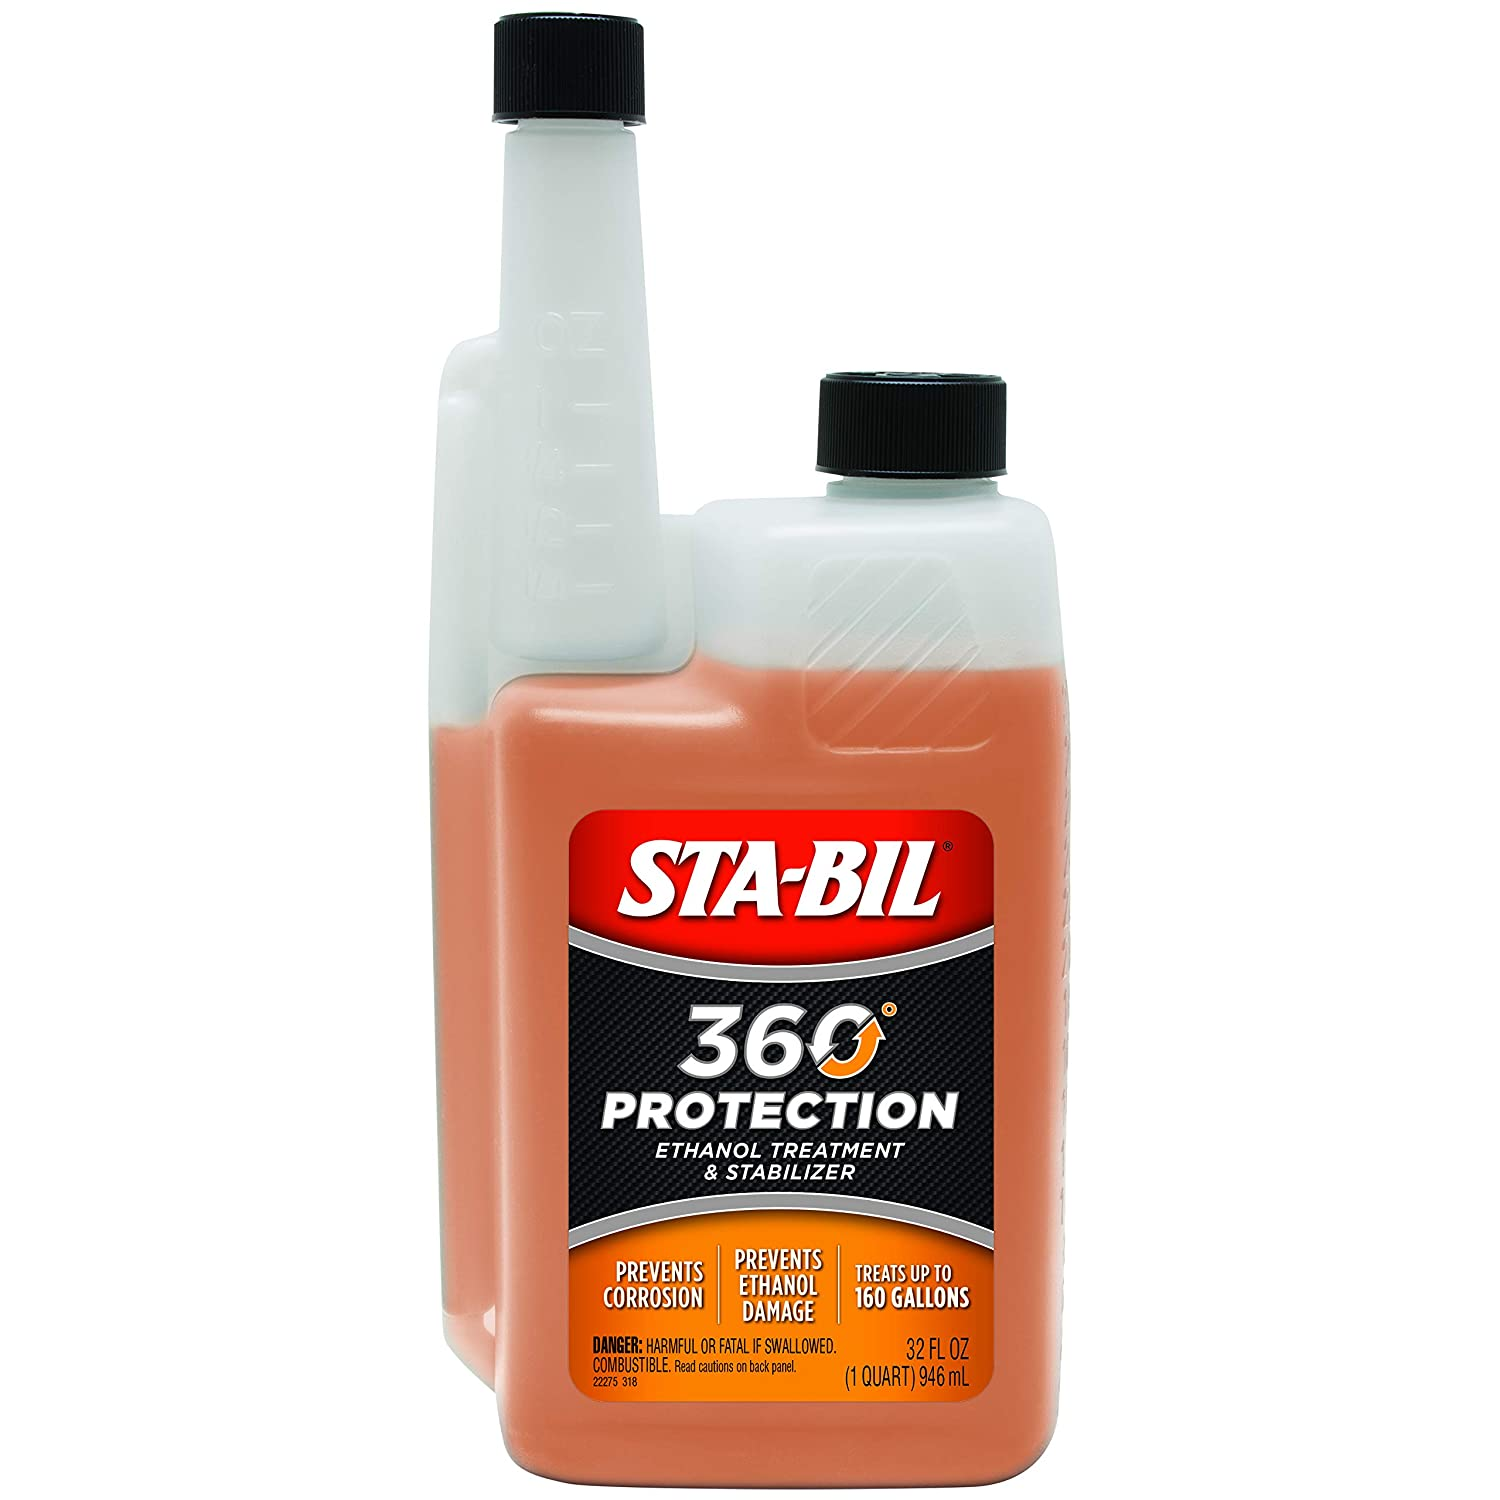 STA-BIL 22275 32 Ounces Ethanol Treatment